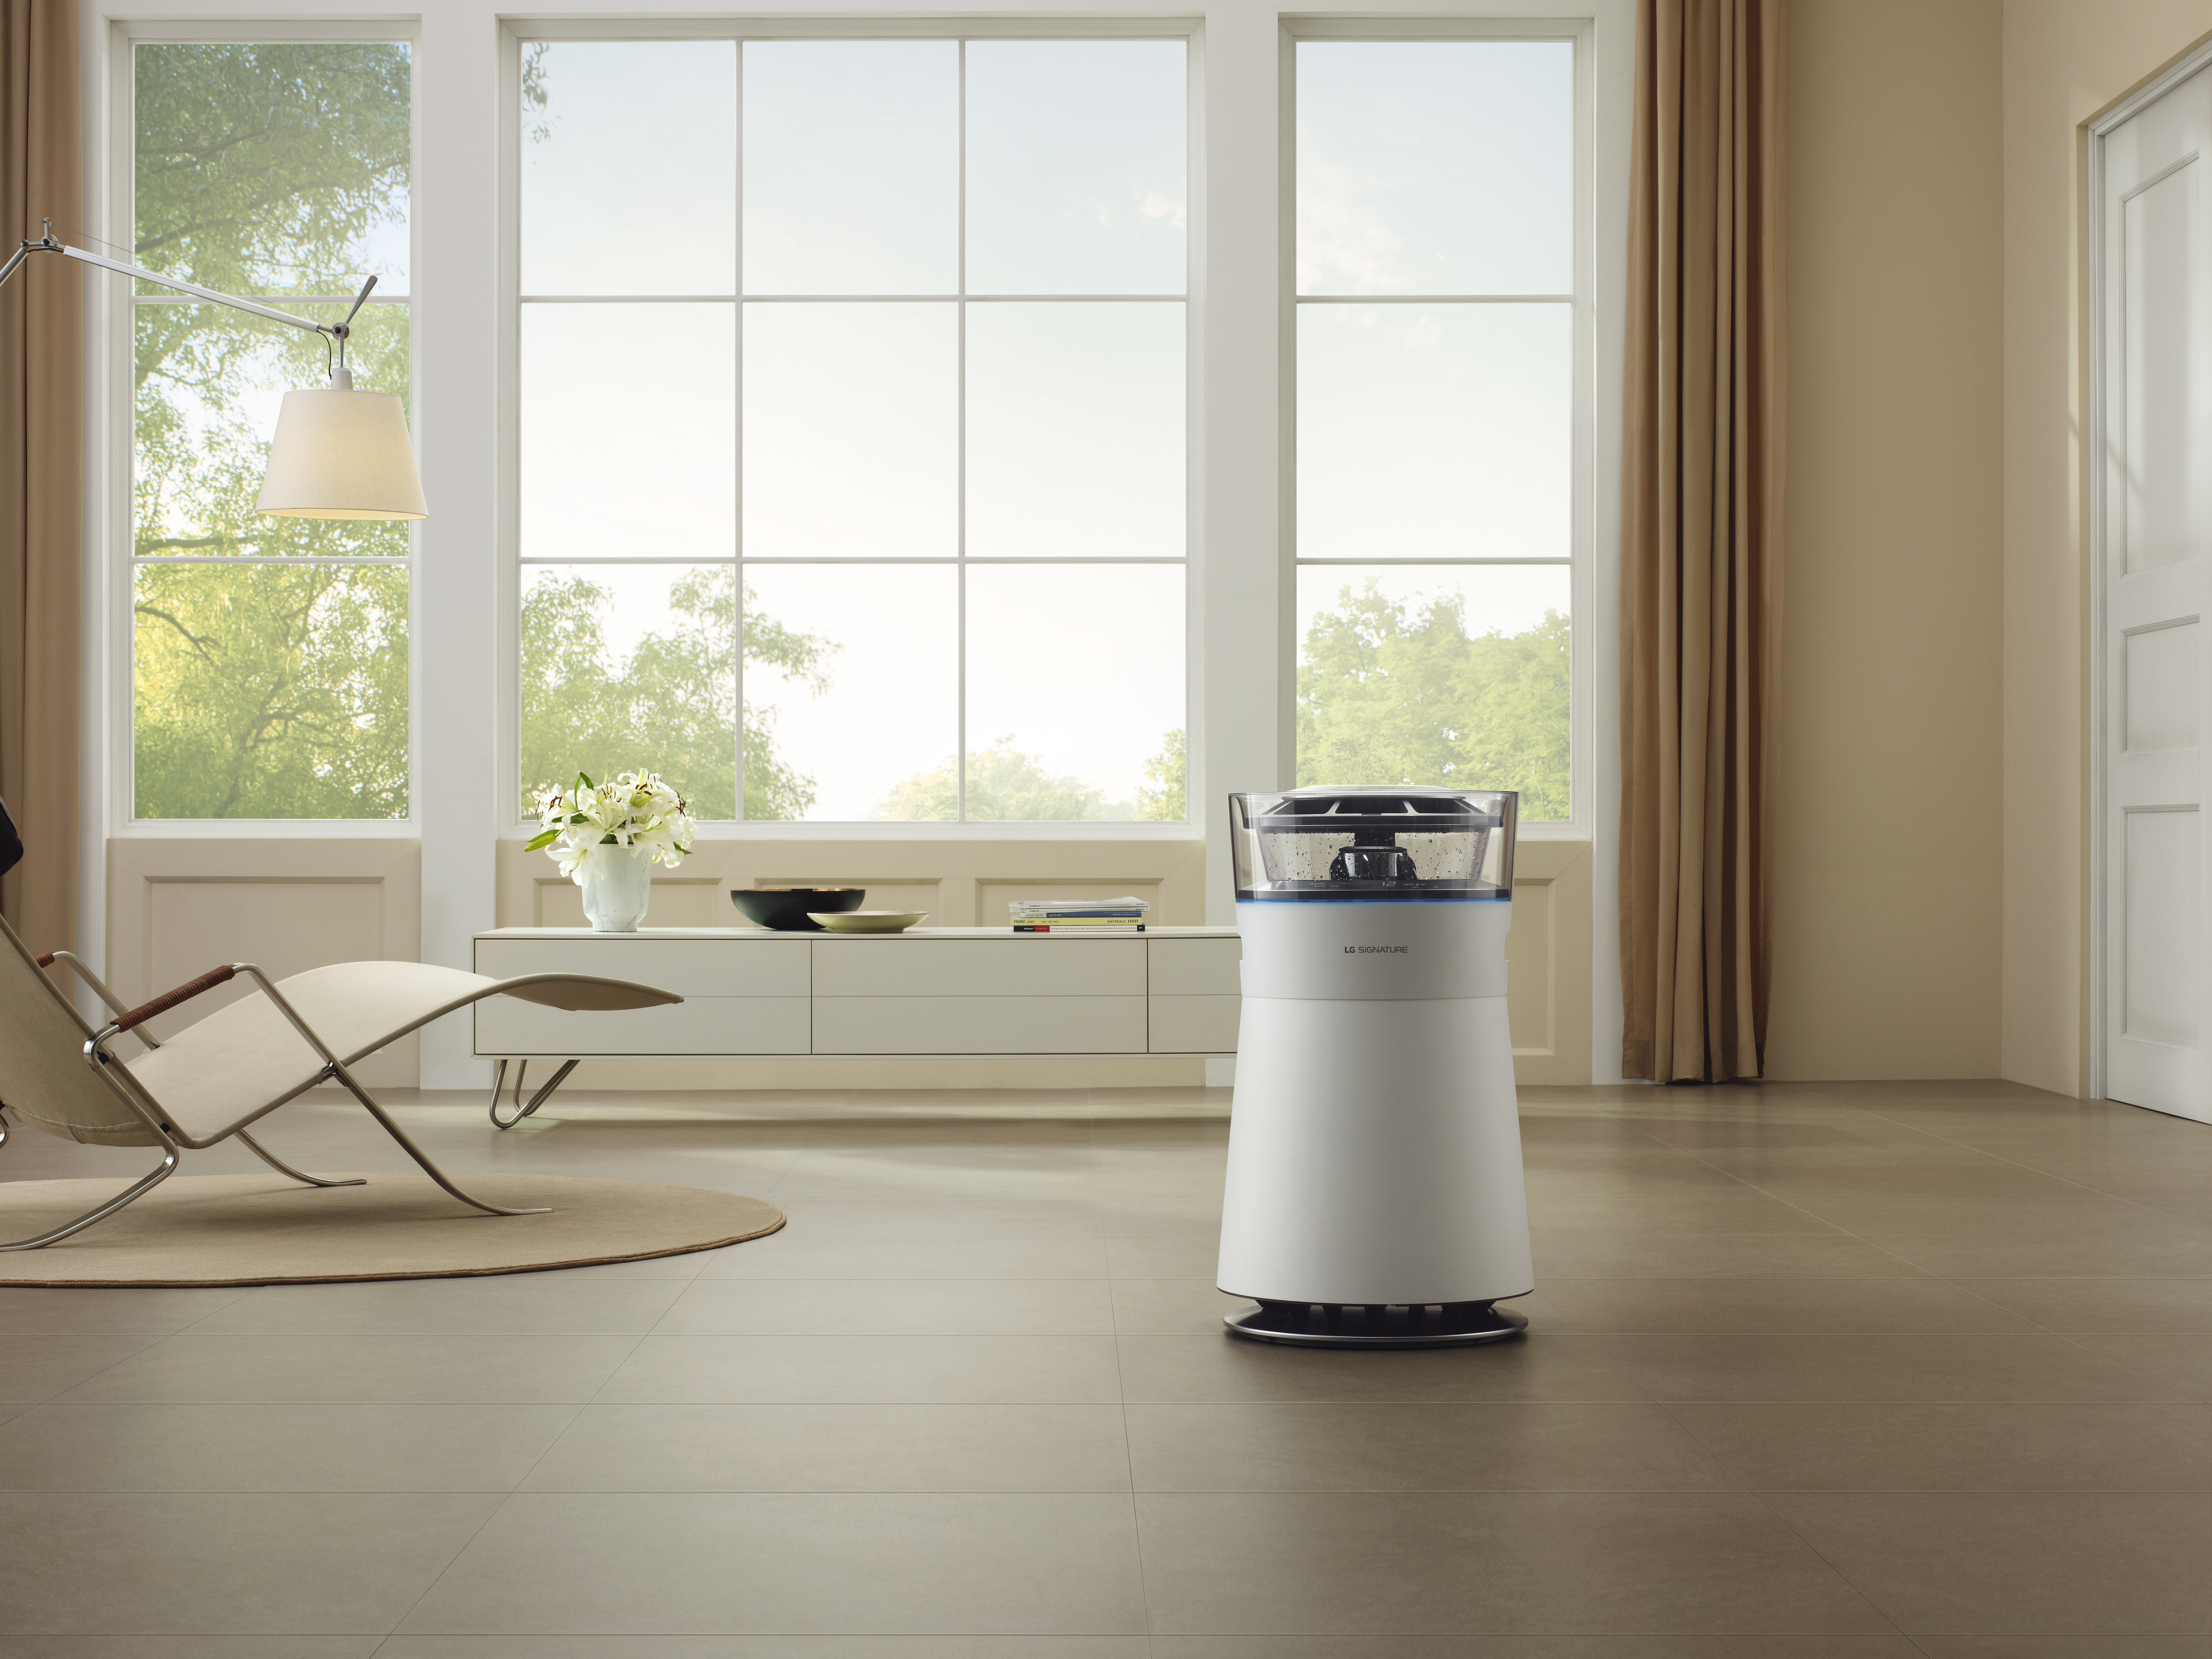 Choosing the Right Air Purifier for Your Home - Alvinology